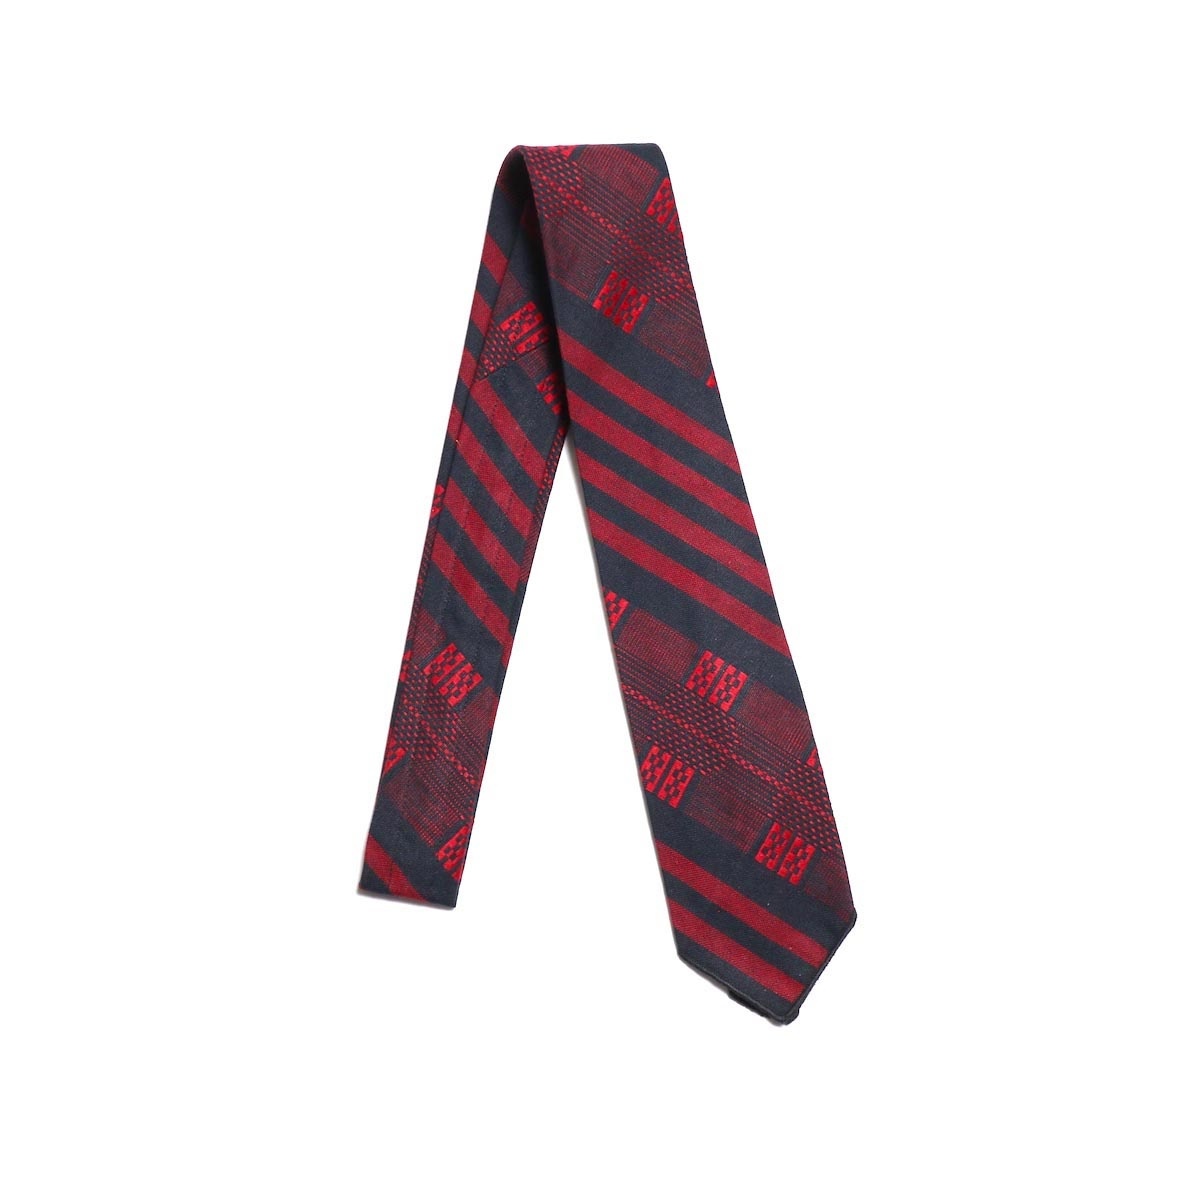 ENGINEERED GARMENTS / Neck Tie Ethnic St. Jacquard -RED/BLACK